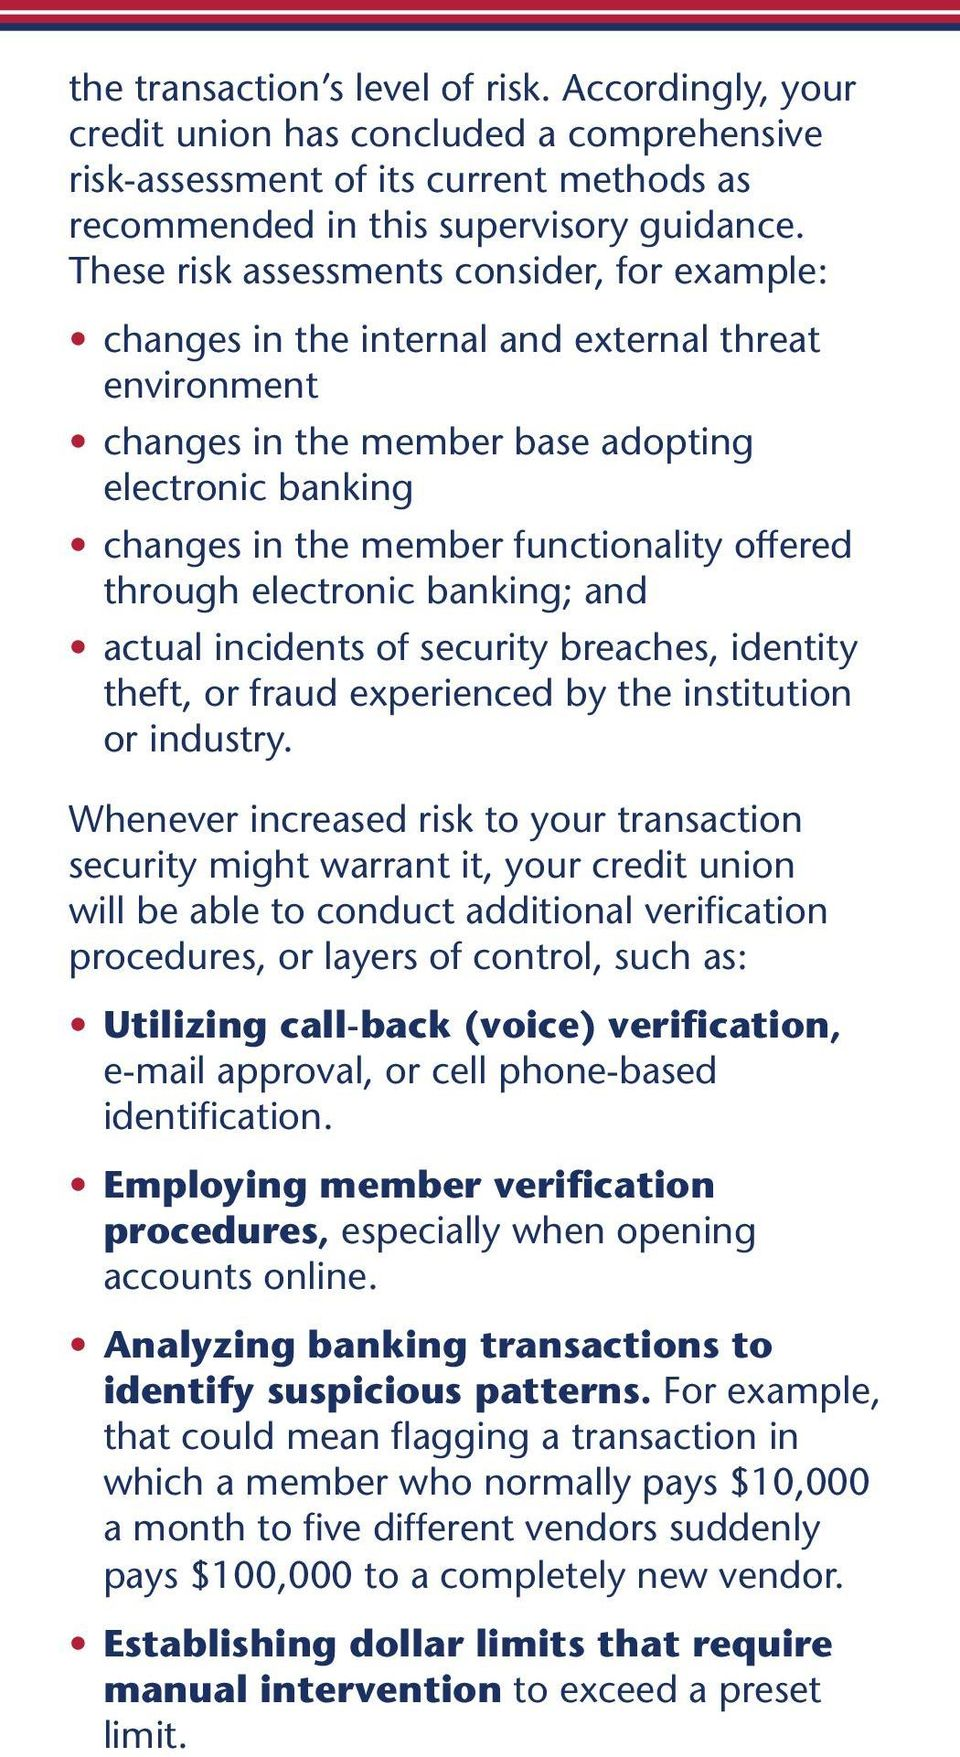 offered through electronic banking; and actual incidents of security breaches, identity theft, or fraud experienced by the institution or industry.